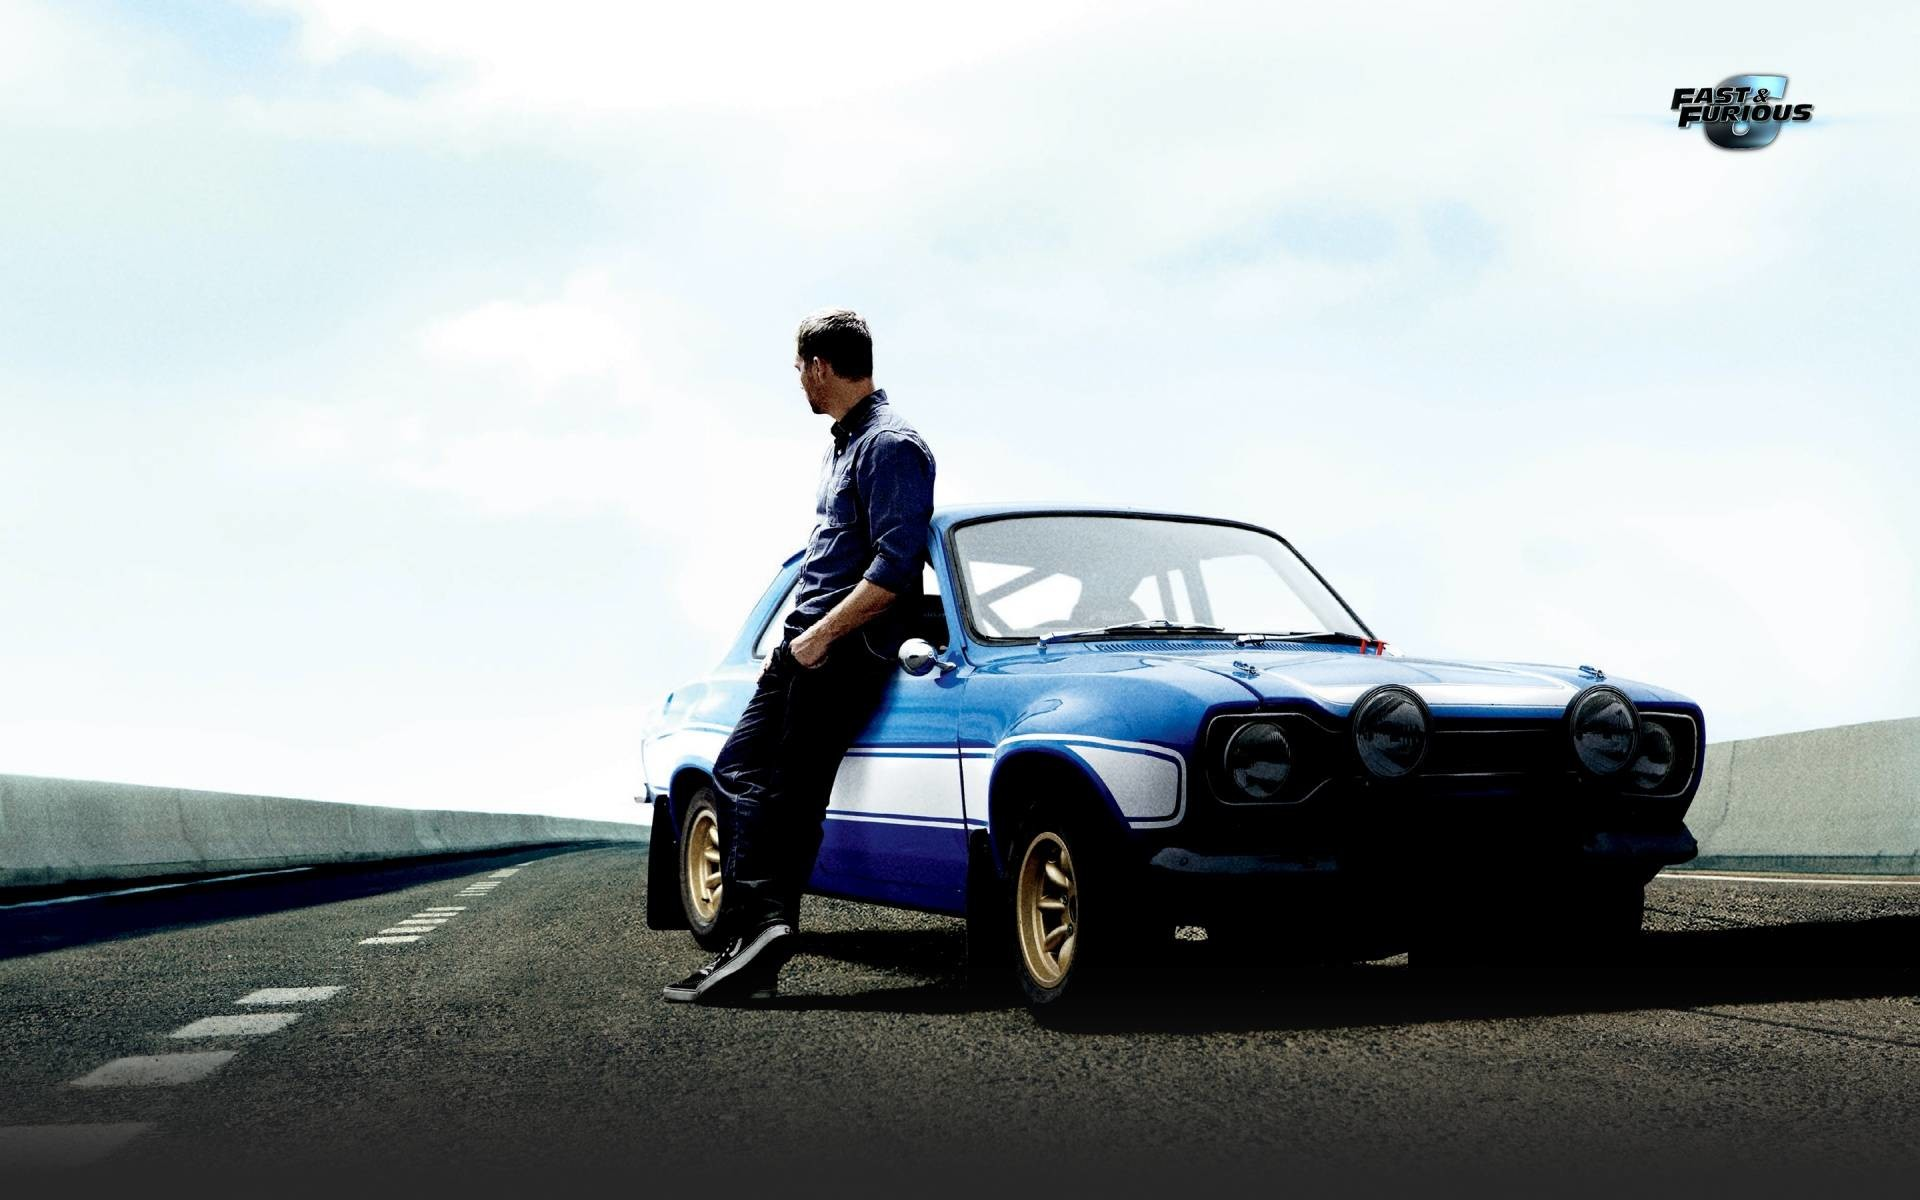 Fast And Furious 6 Cars Wallpapers Hd Background 9 HD Wallpapers .